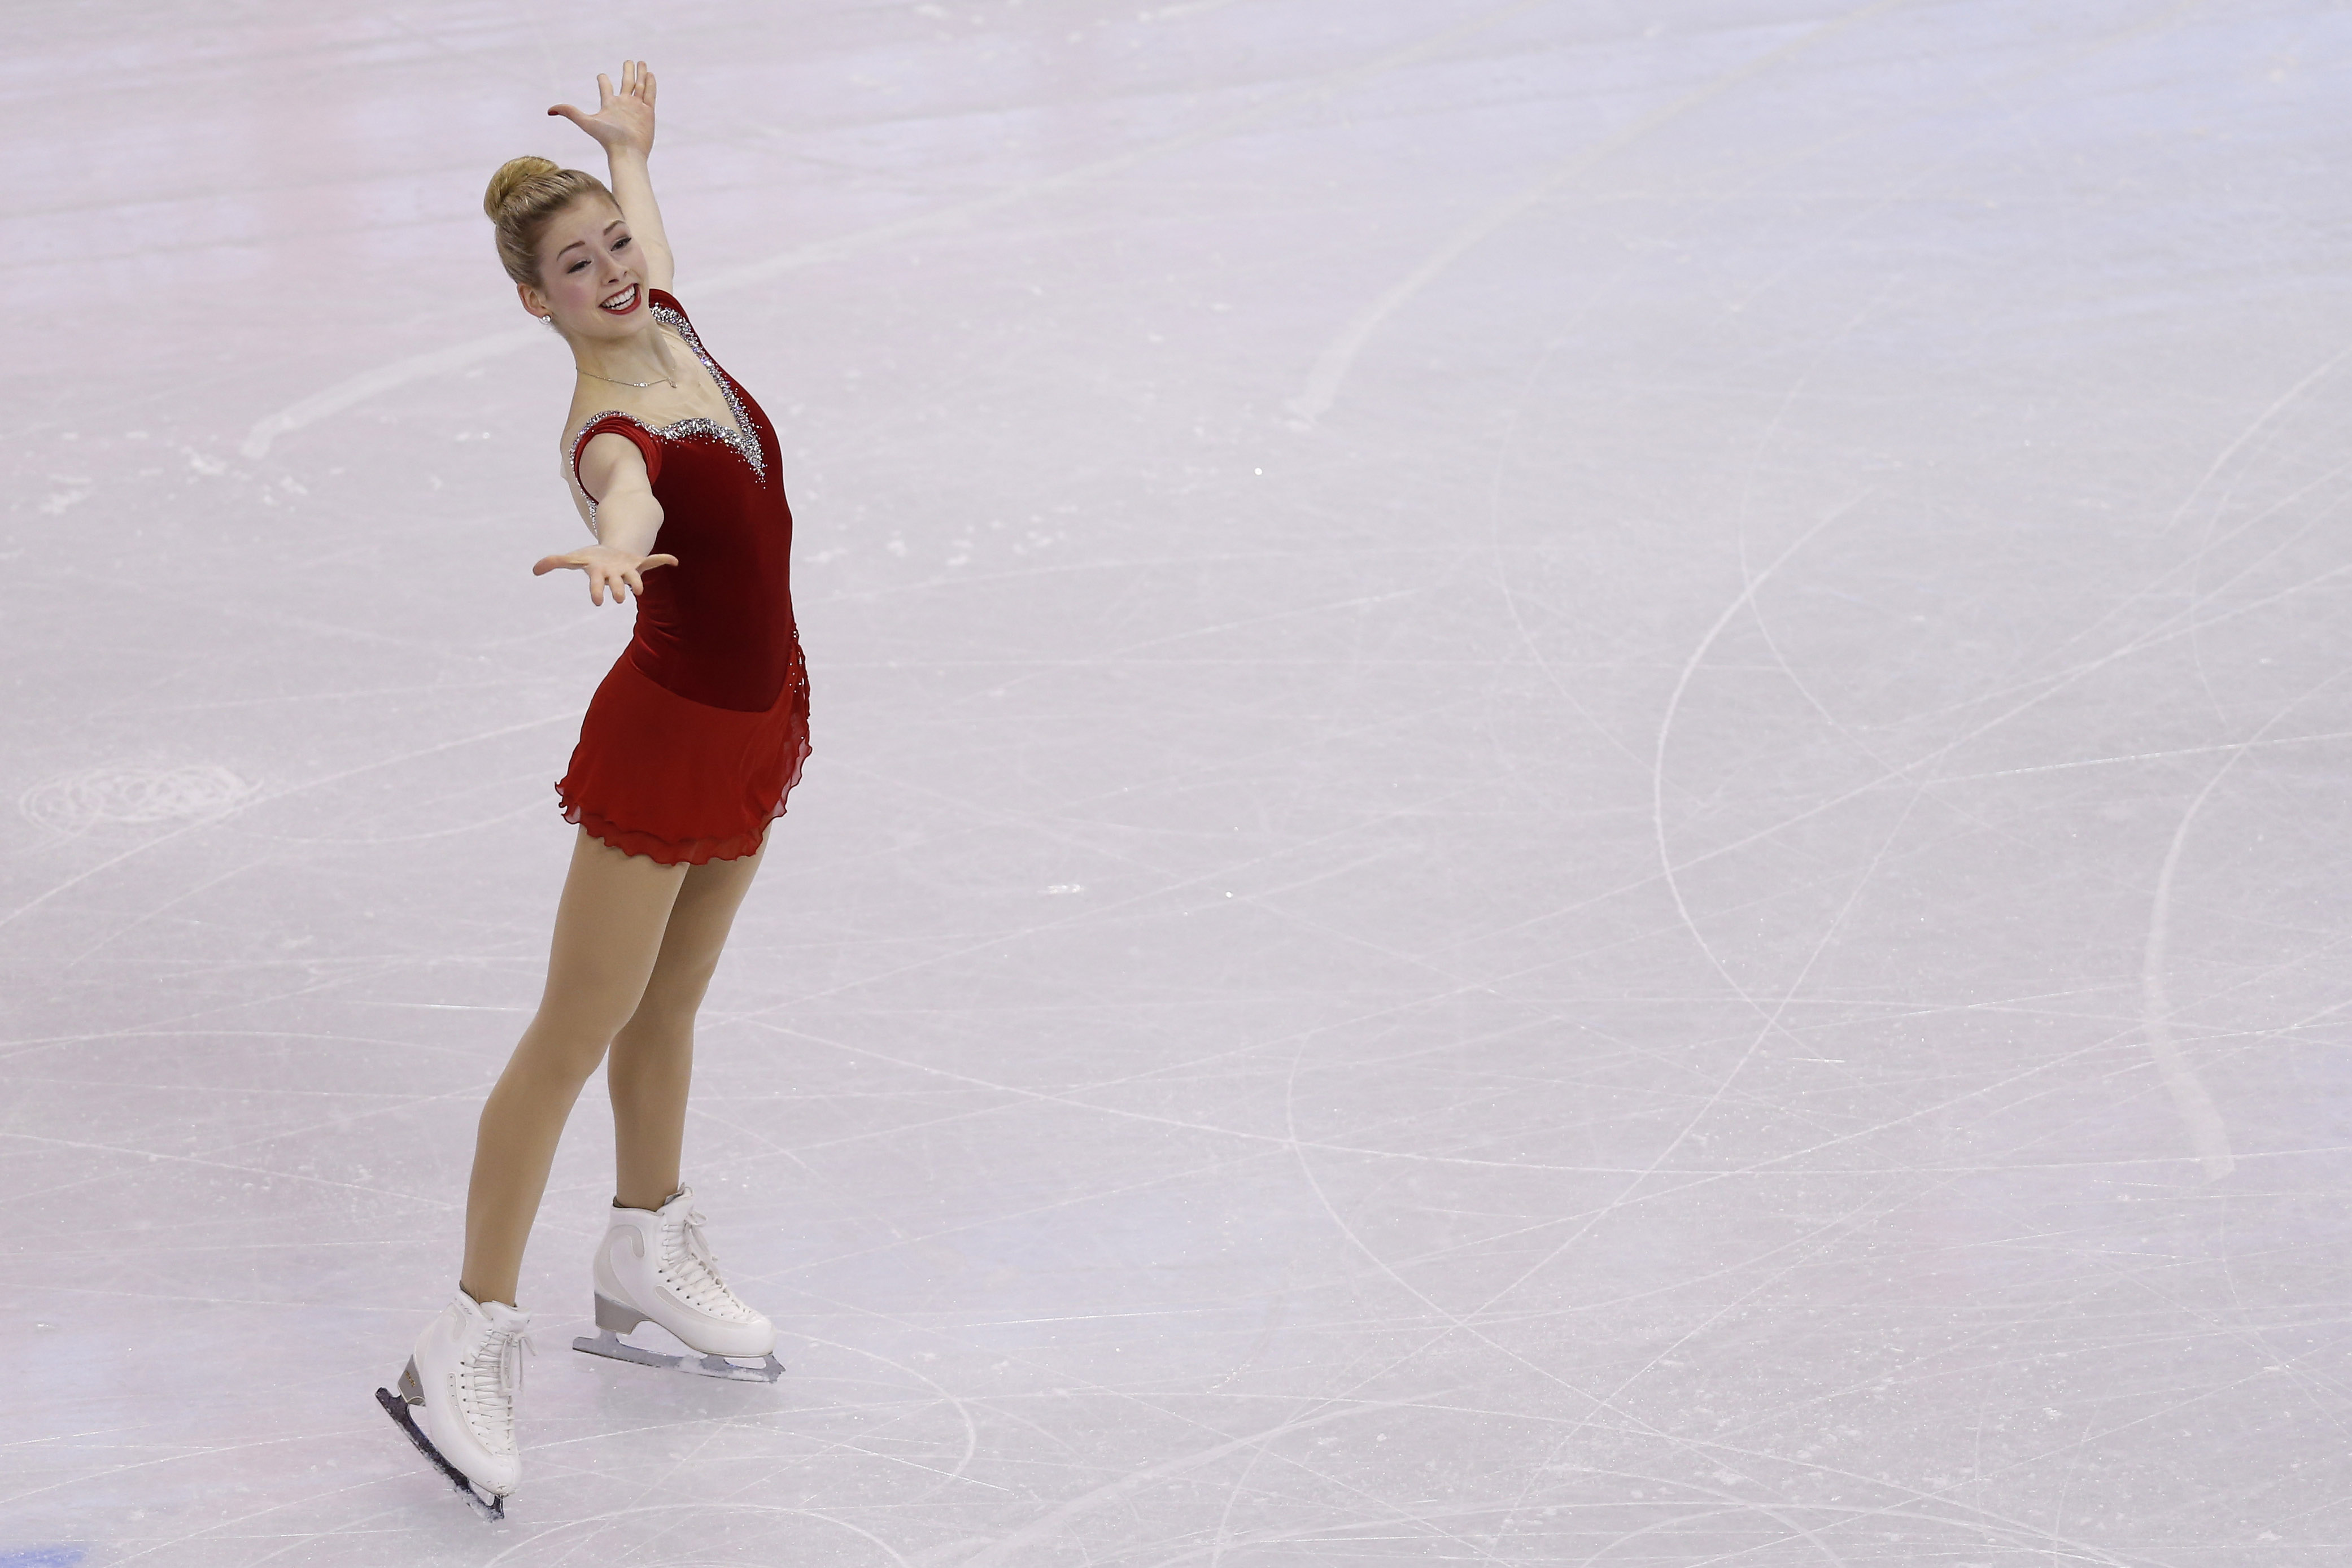 Jan 9, 2014; Boston, MA, USA; Gracie Gold performs during the ladies short program in the U.S. Figure Skating Championships at TD Garden. (Greg M. Cooper-USA TODAY Sports)